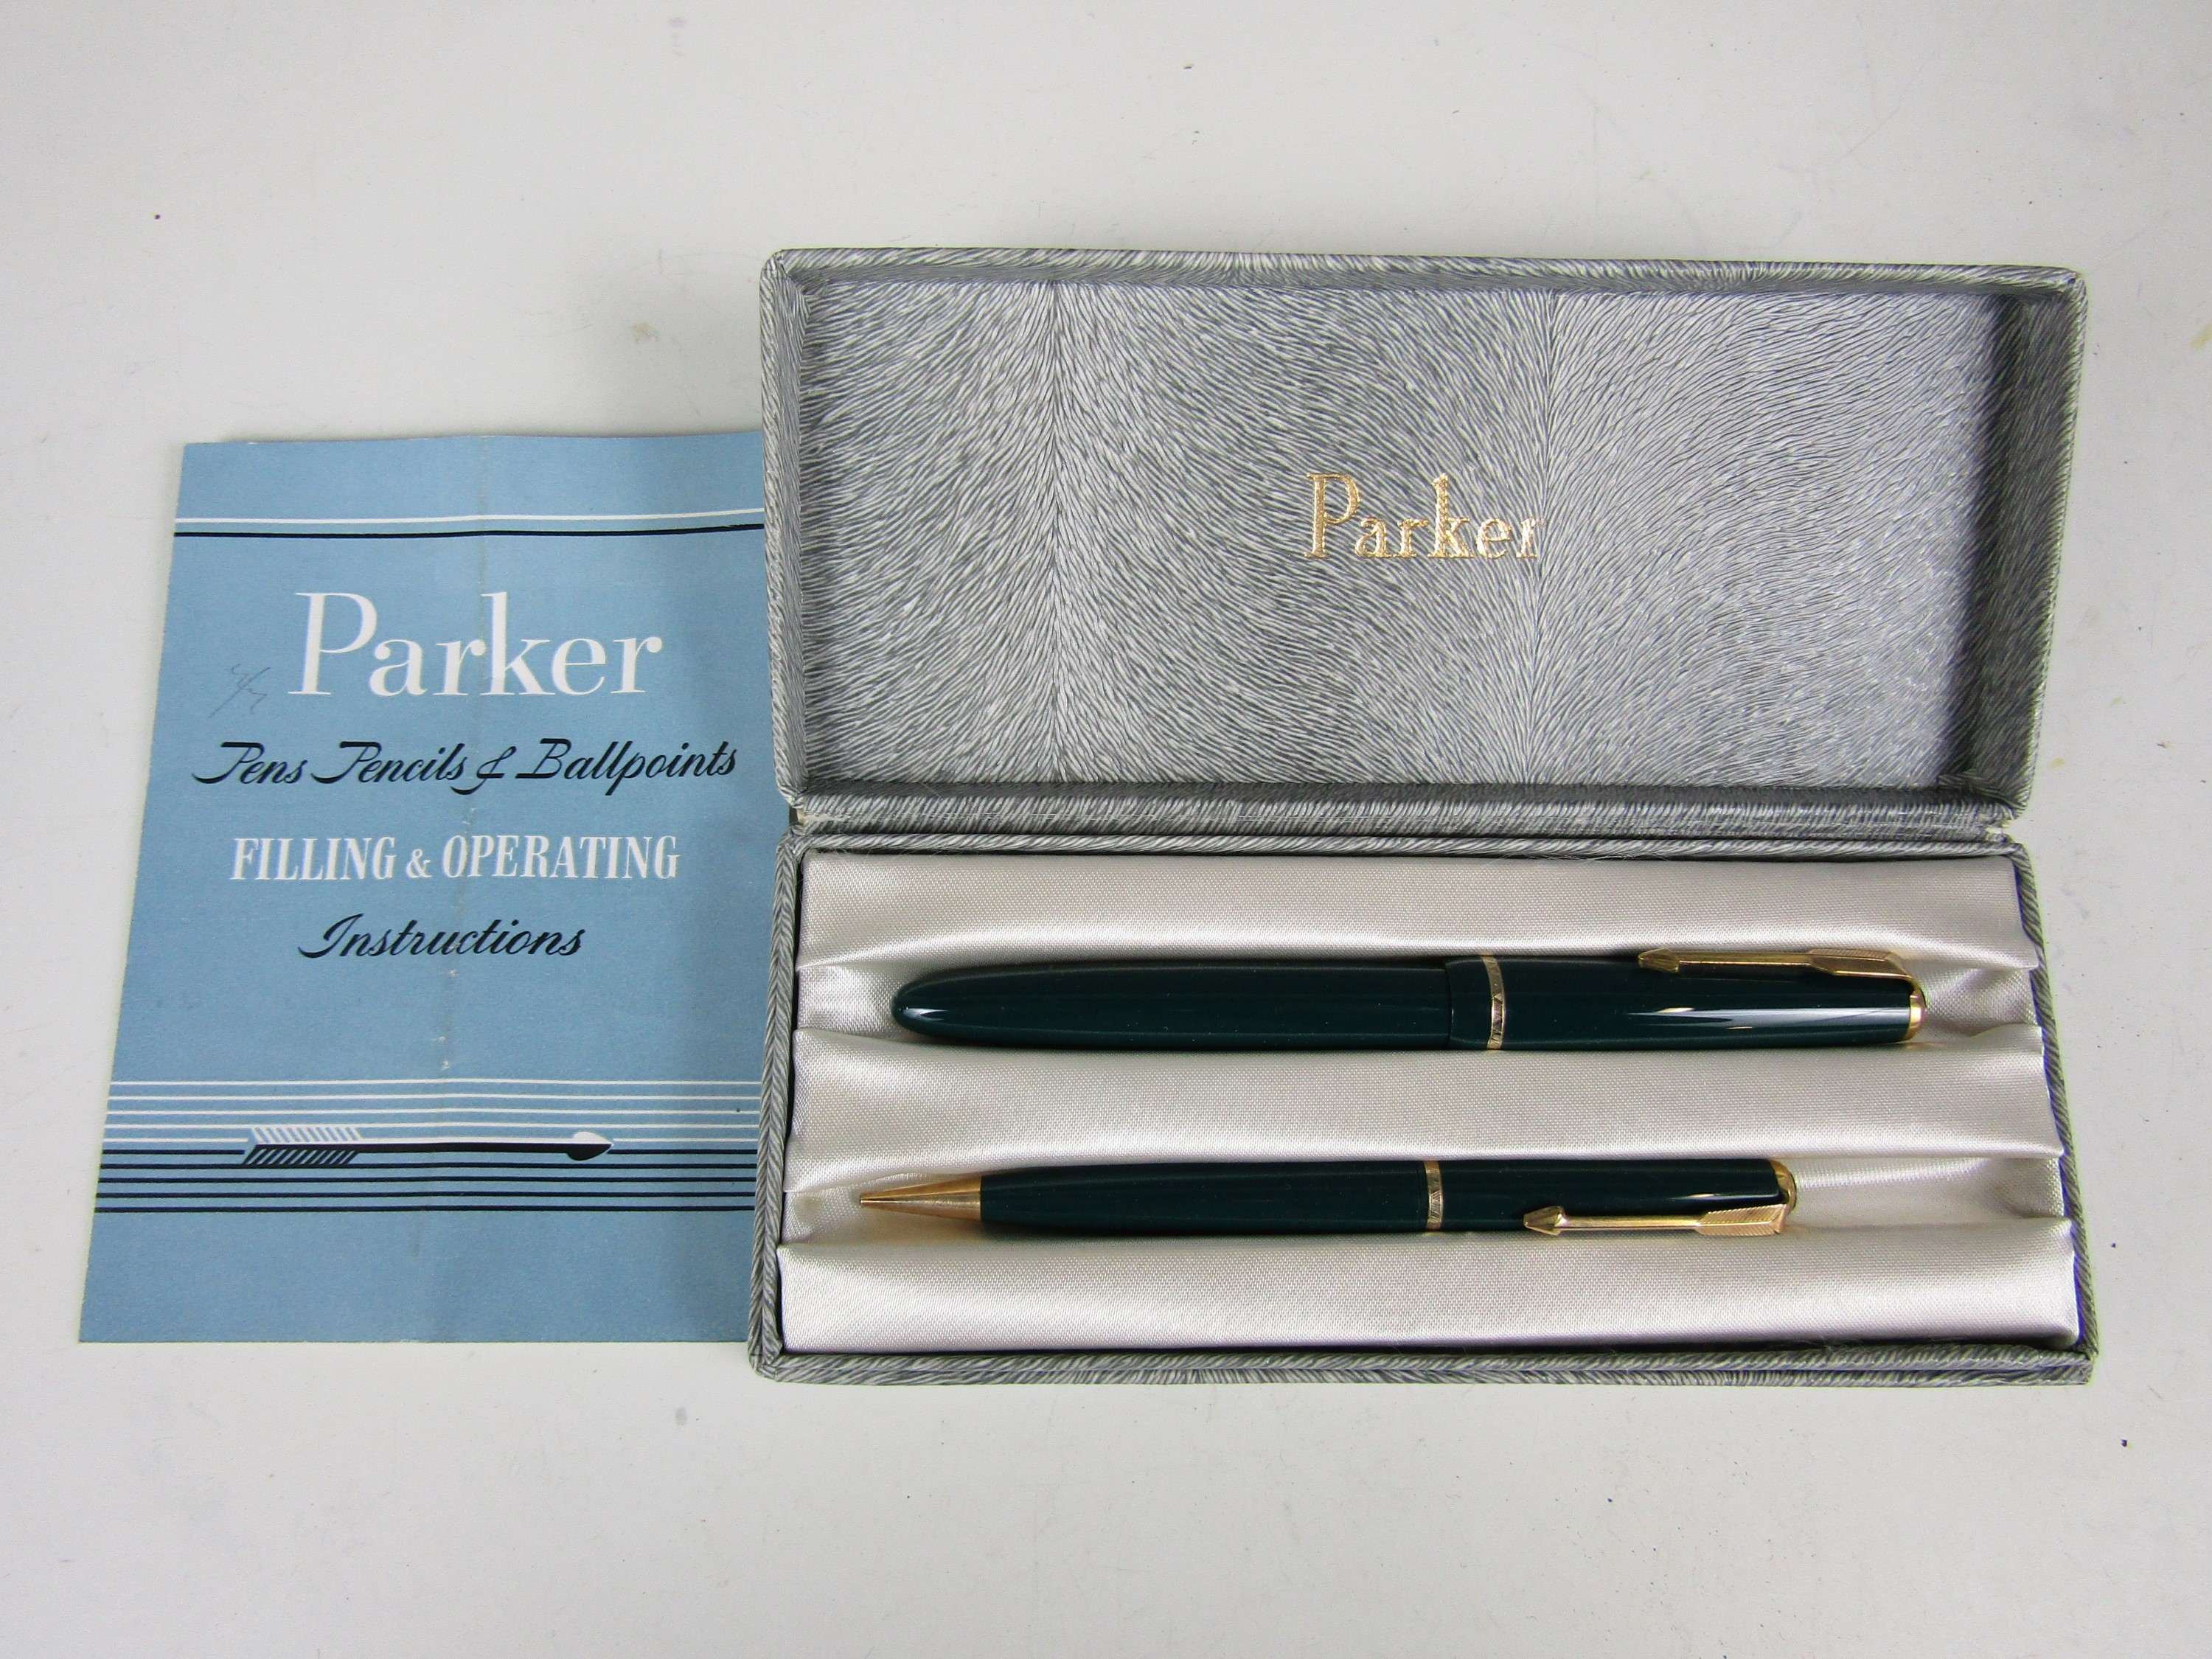 Lot 16 - A vintage cased Parker pen set with paperwork